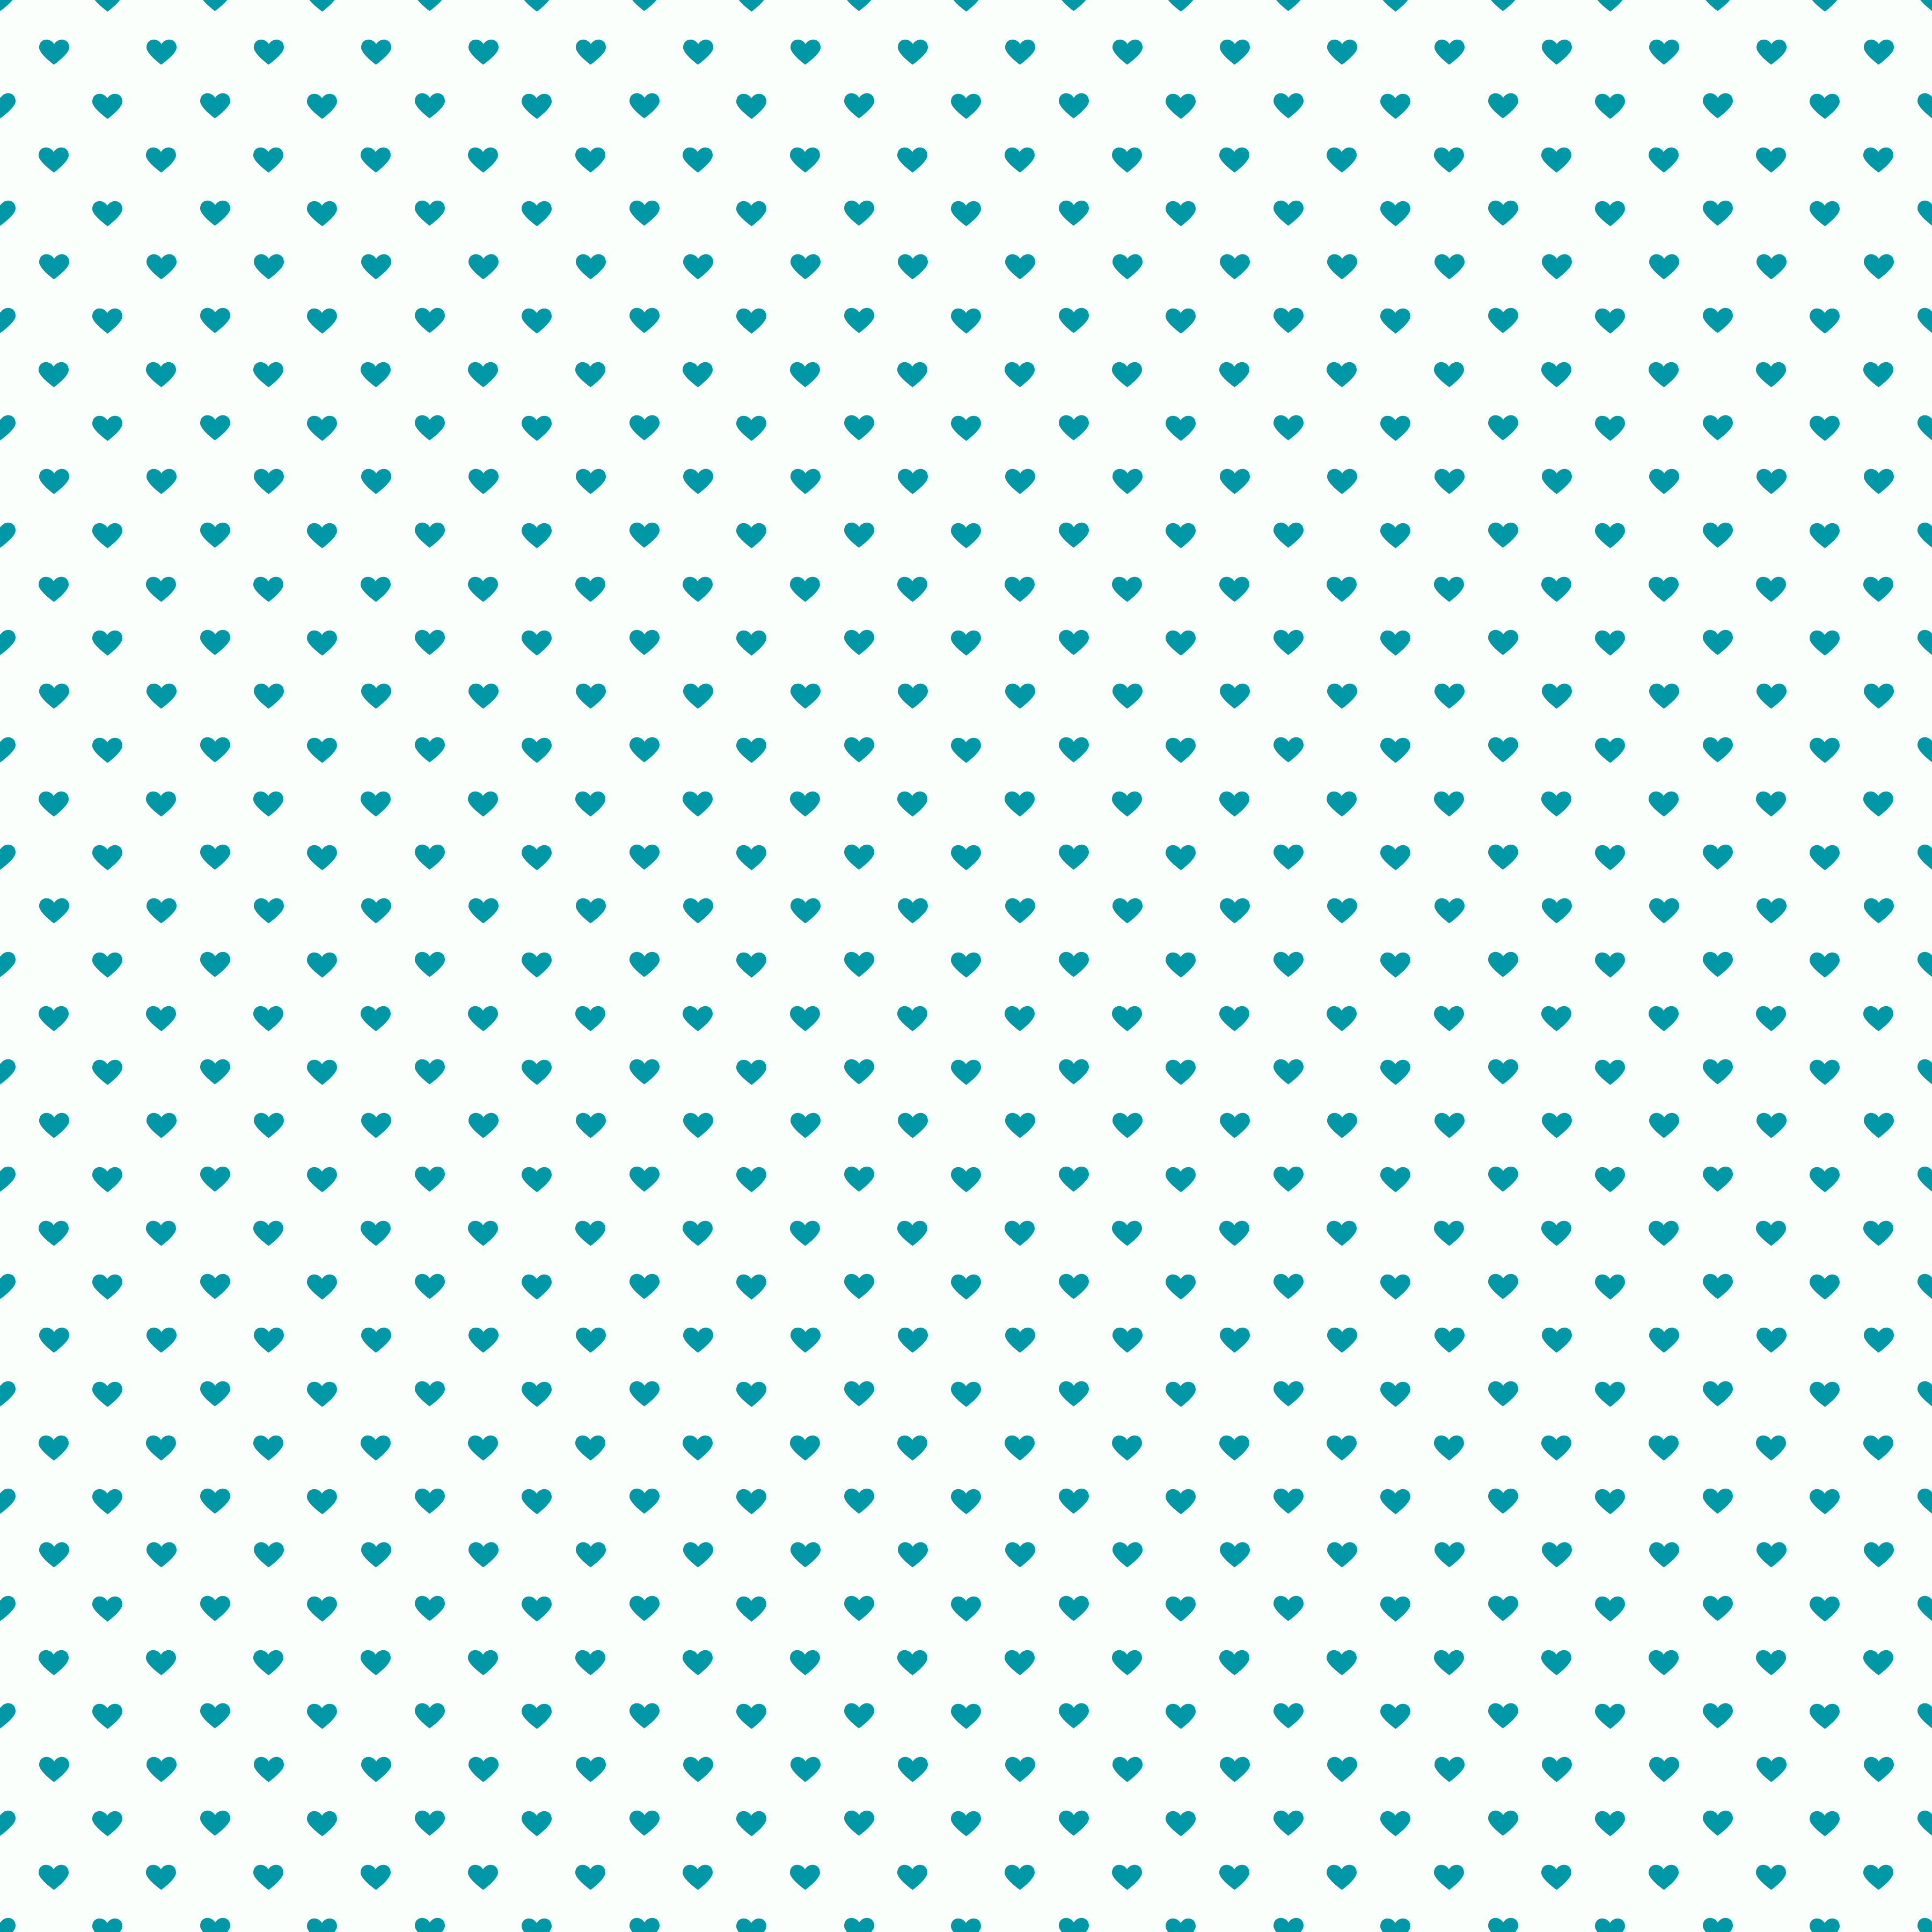 Seamless Blue Hearts On A White Background Free Image